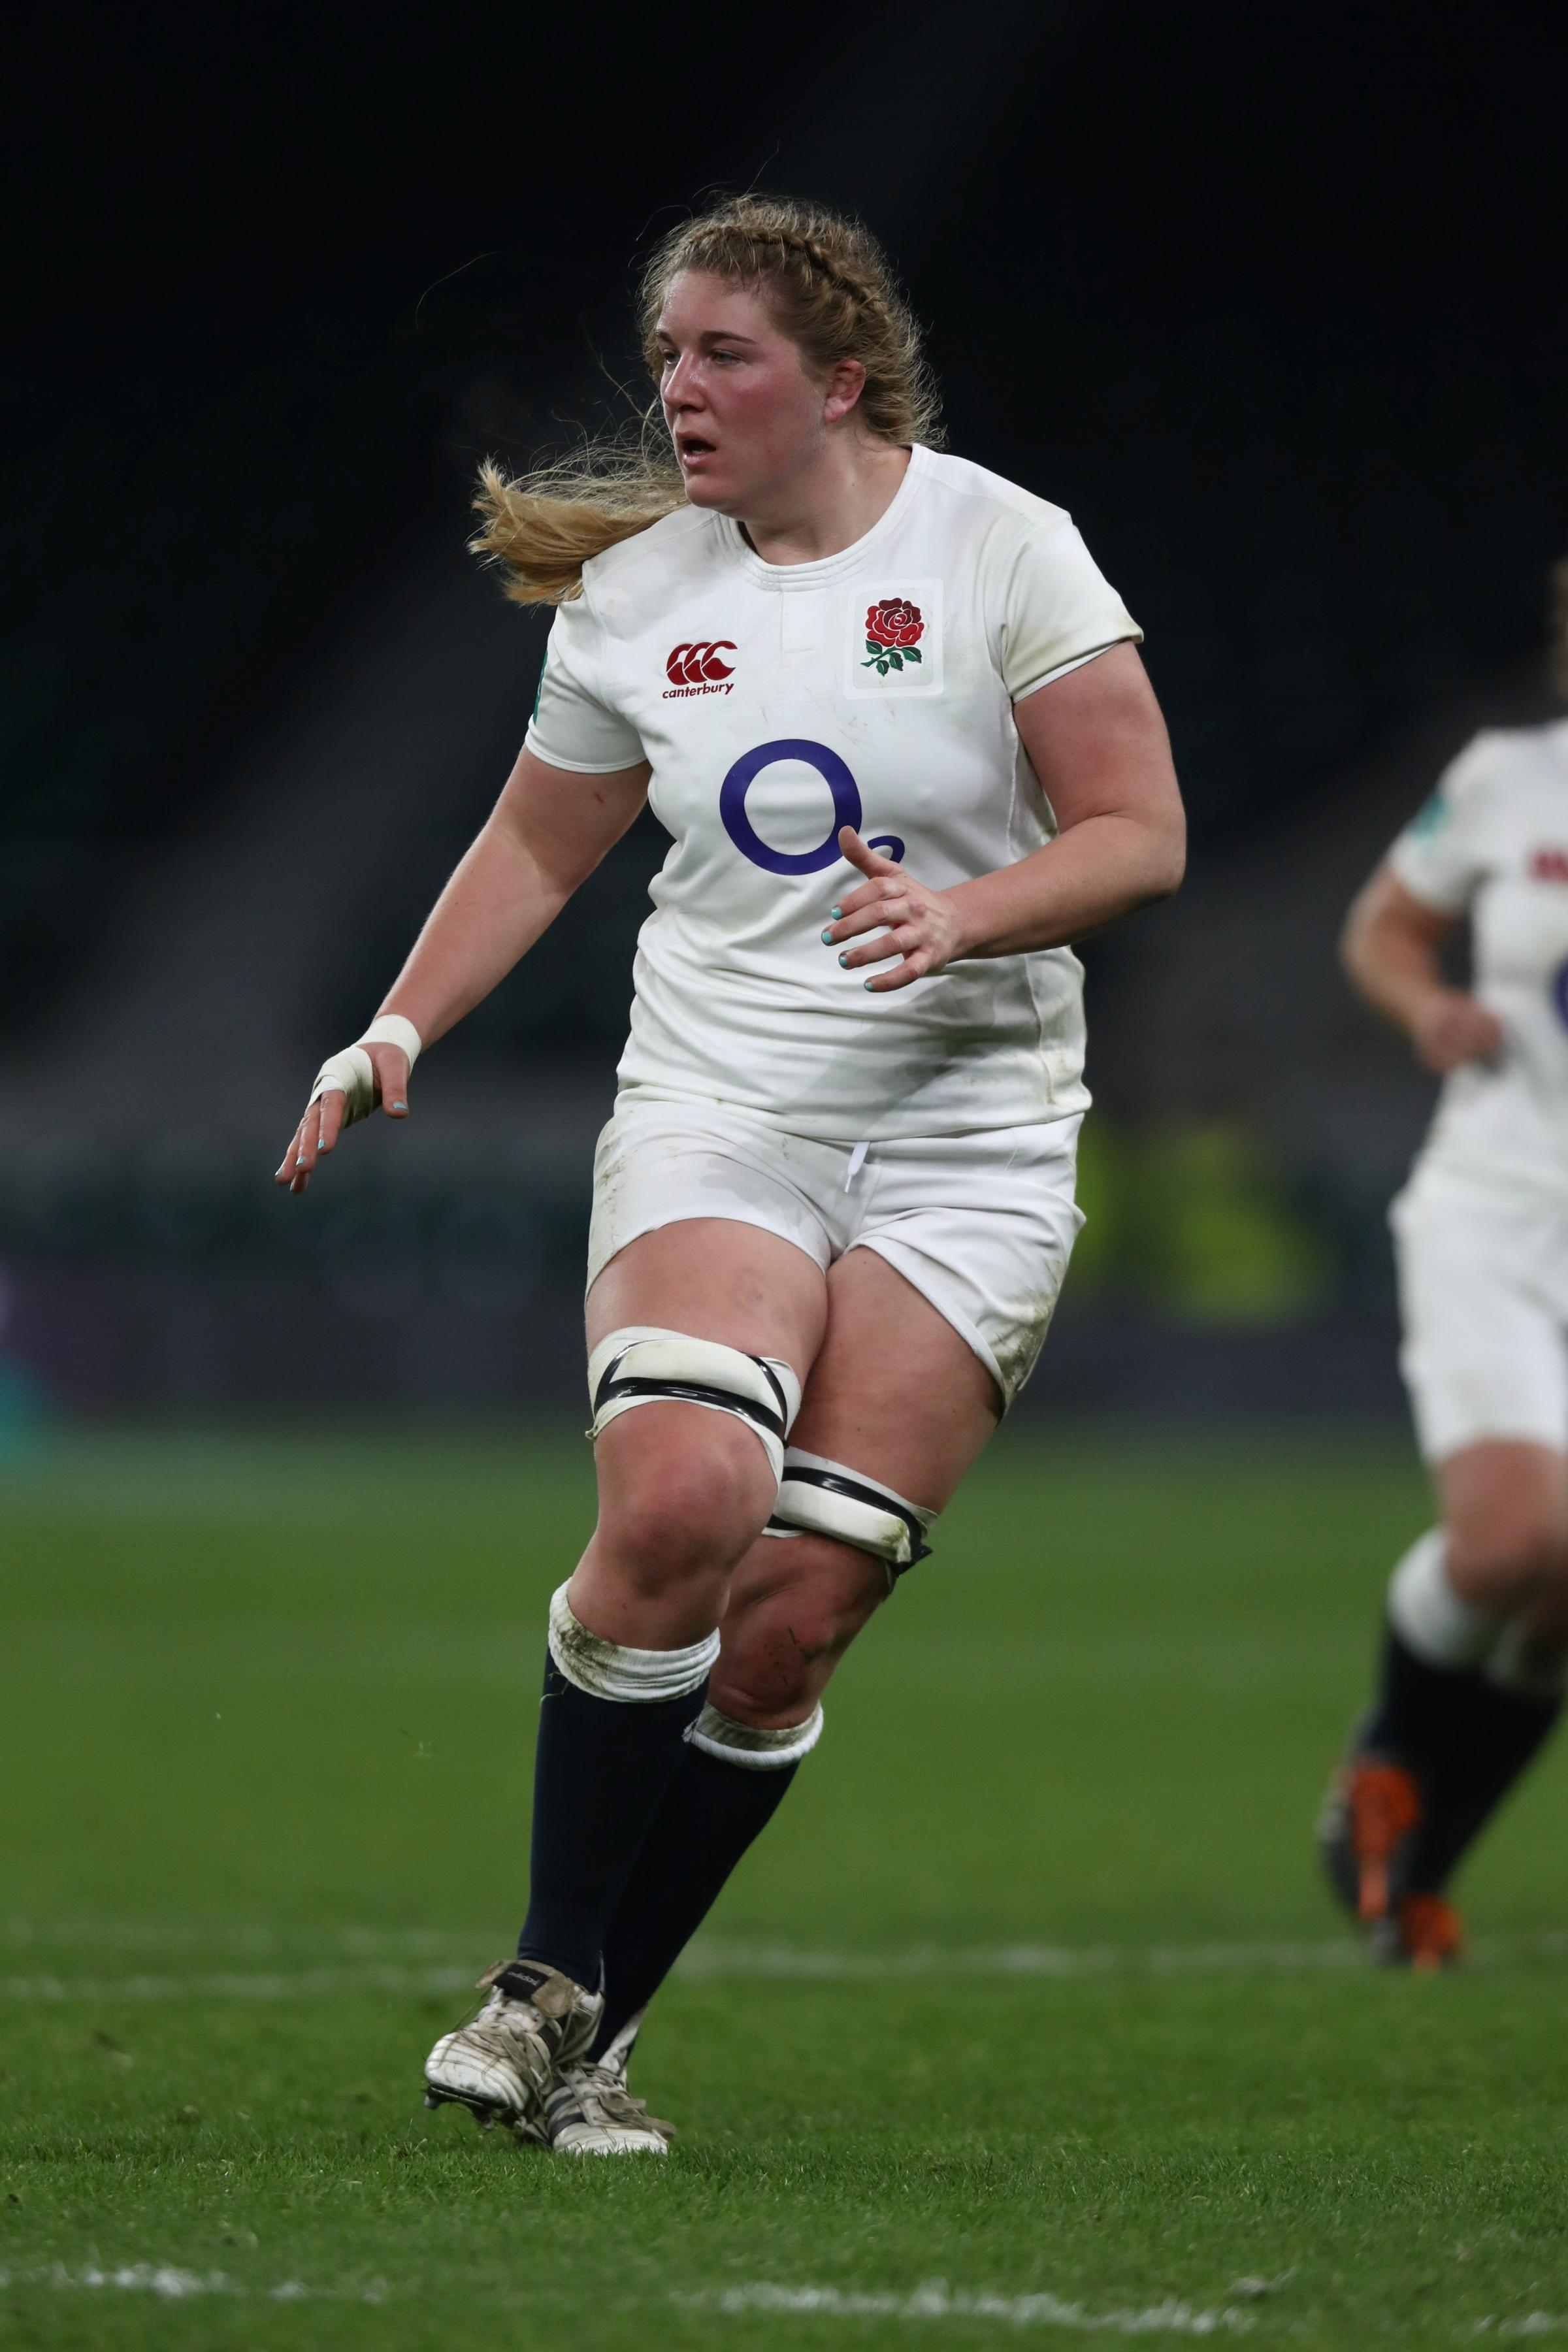 EX-ELLINGHAM & RINGWOOD YOUNGSTER: Poppy Cleall in action for England